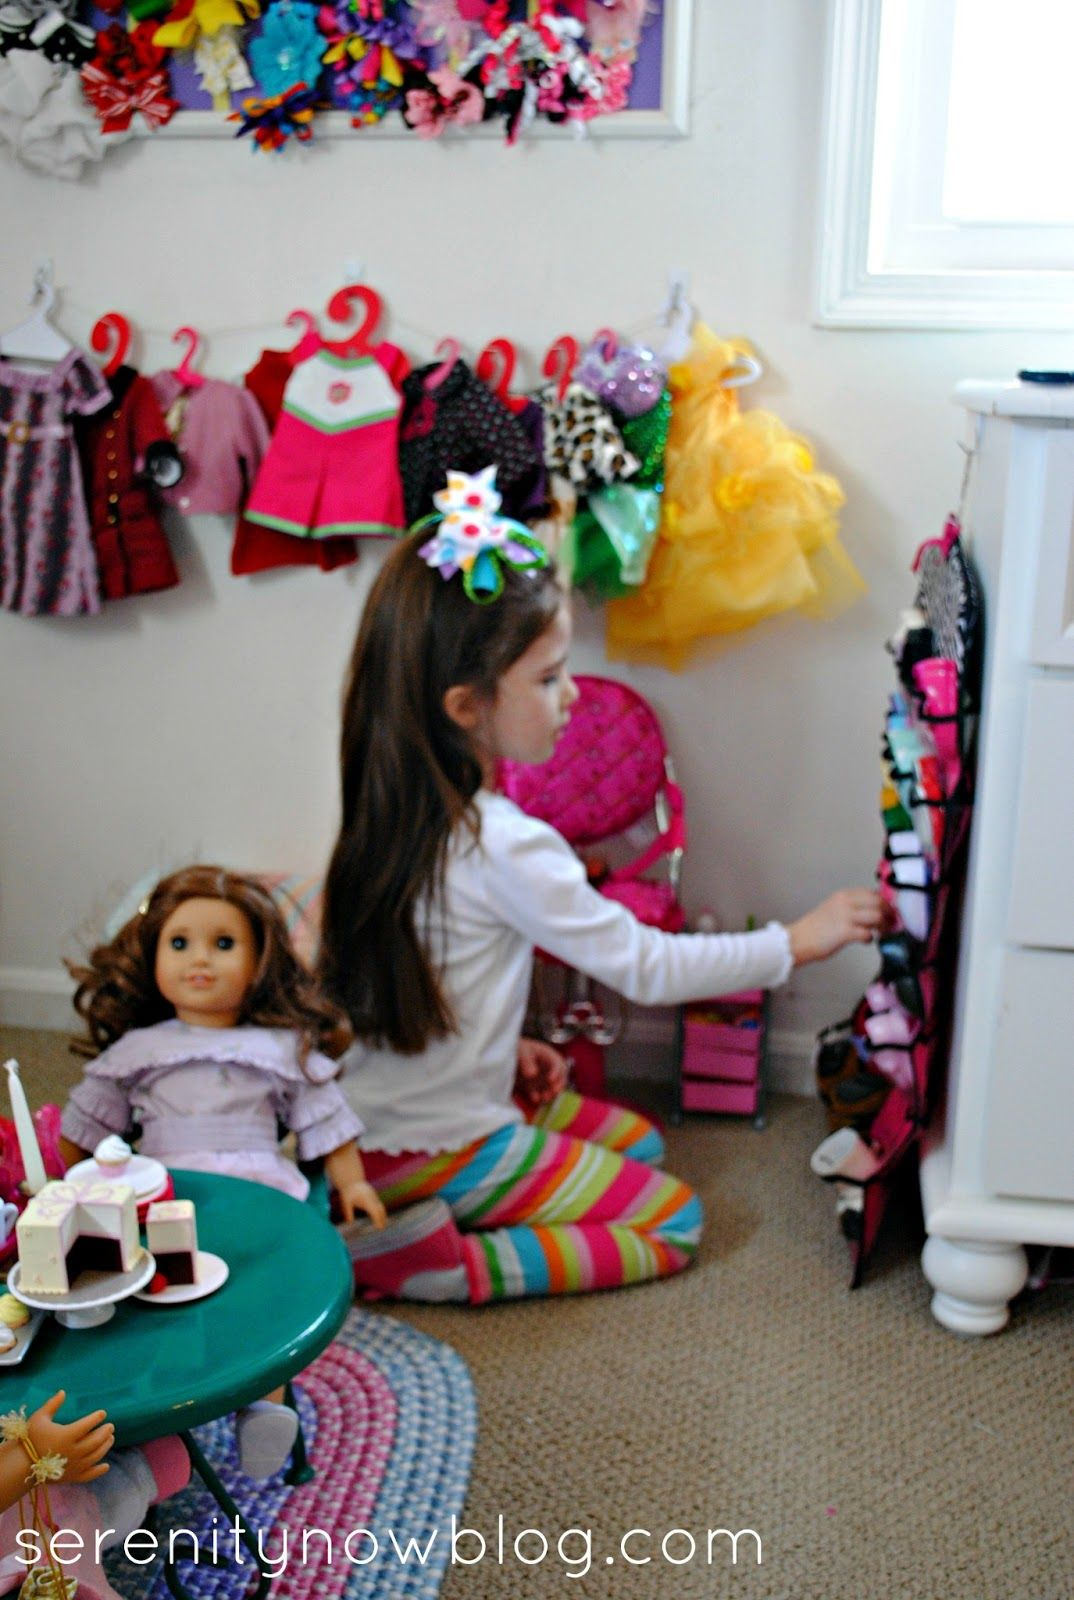 How To Organize And Store Doll Shoes And Accessories